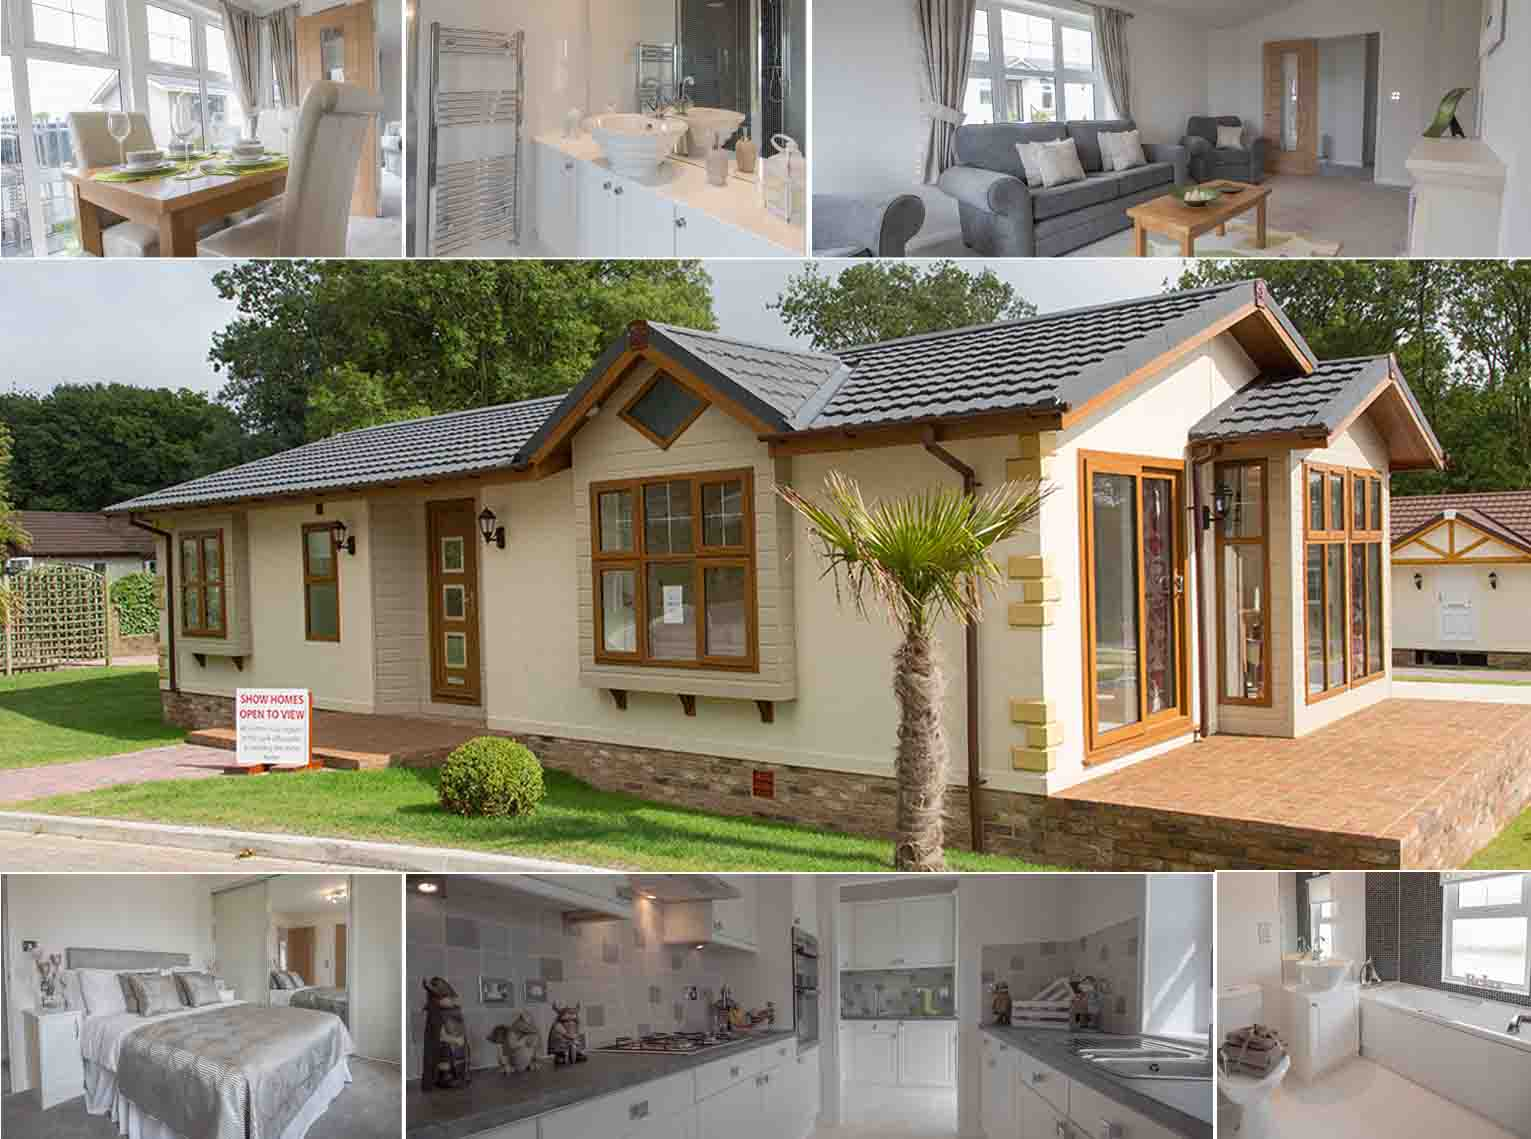 Windsor Oakleigh park residential homes - residential mobile homes for sale in essex